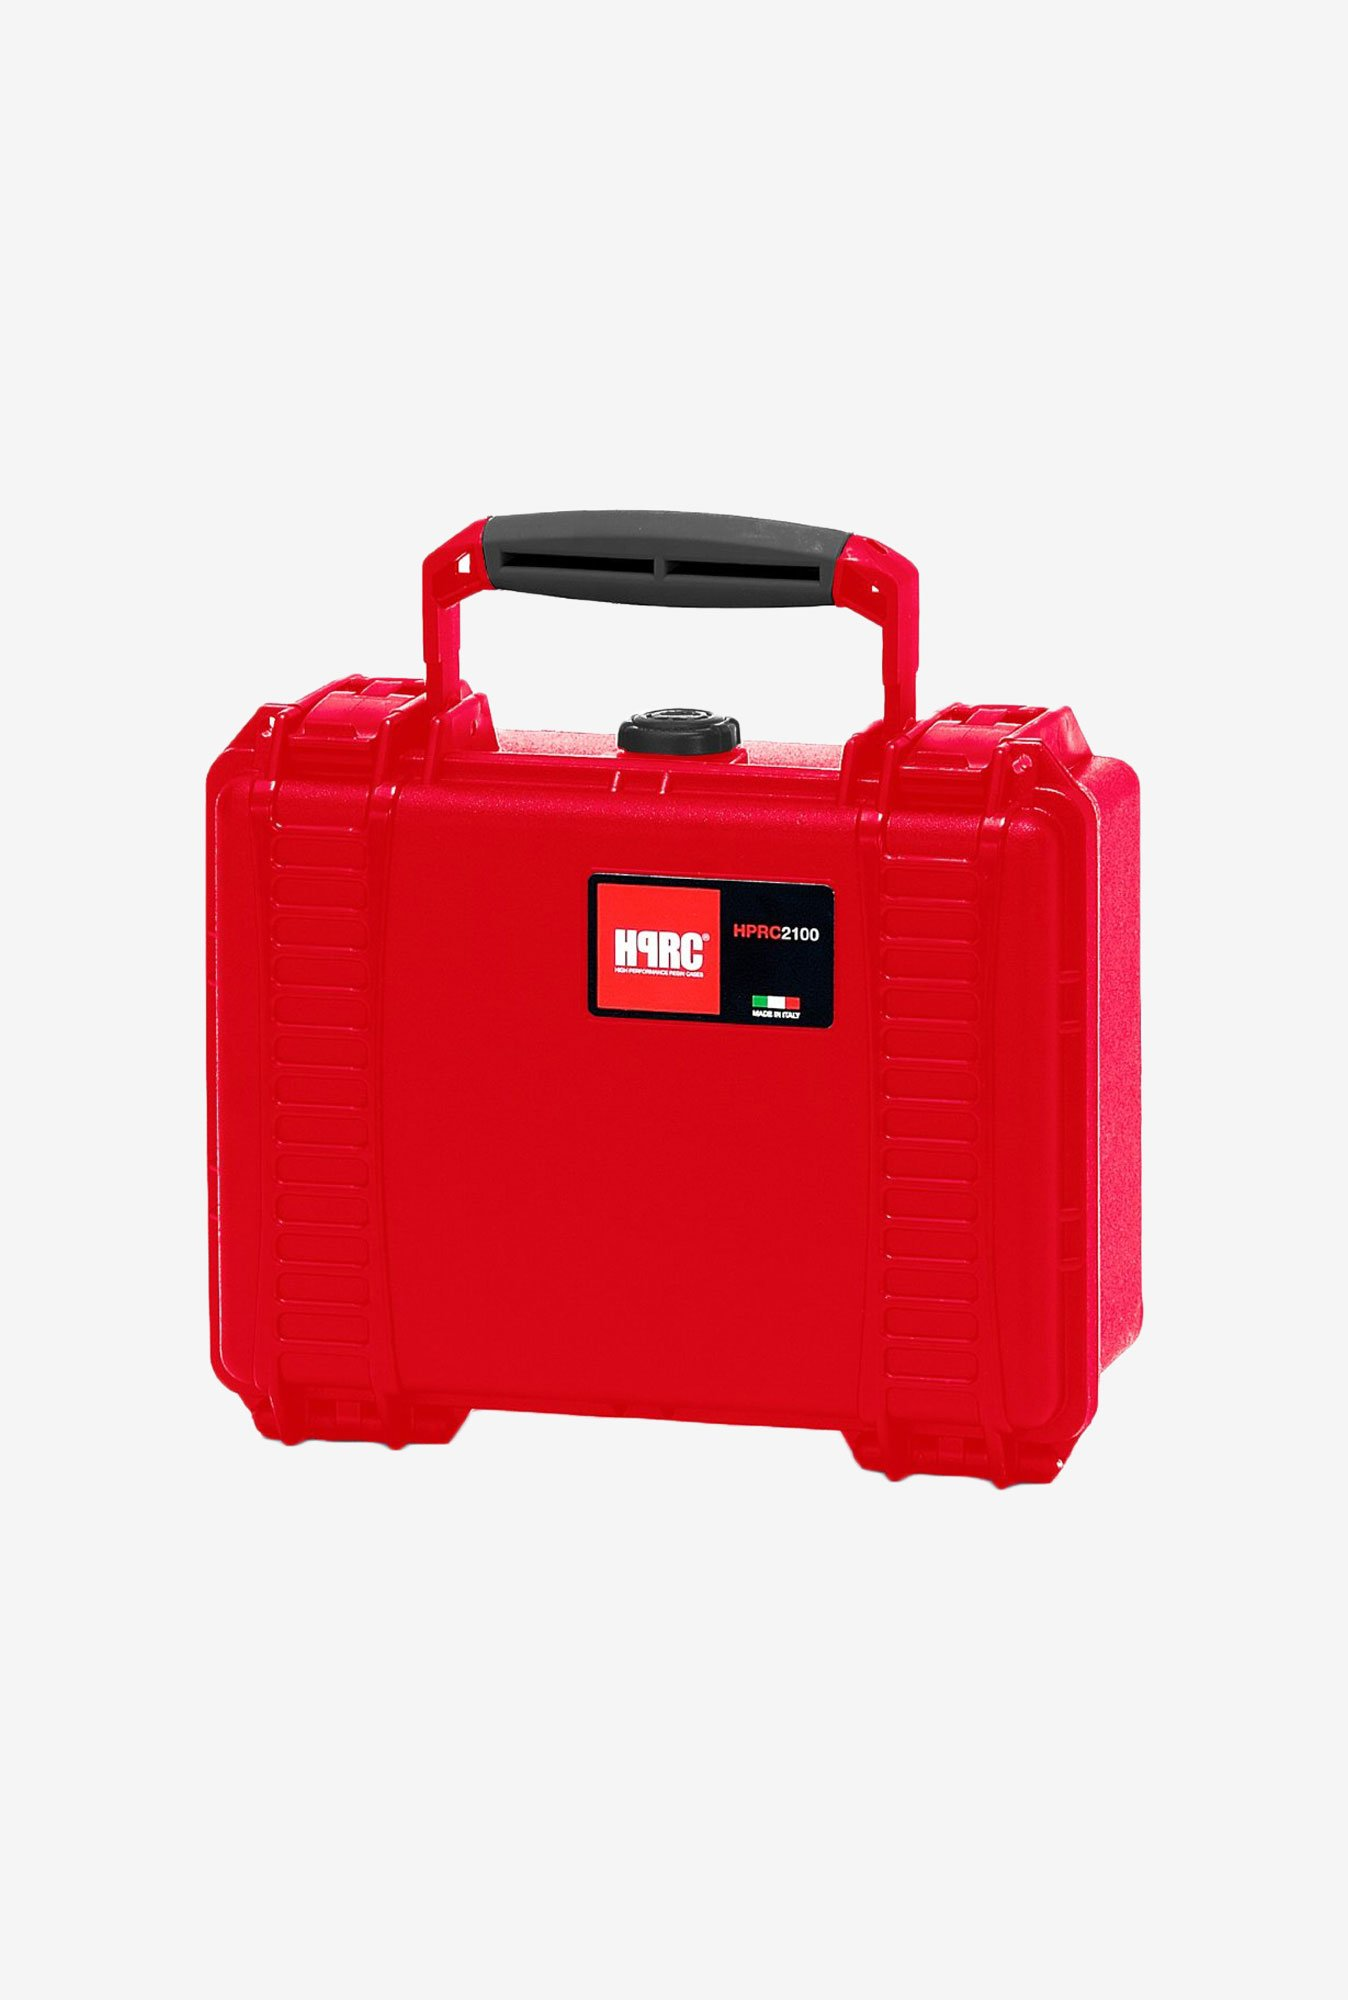 HPRC 2100E Empty Hard Case (Red)